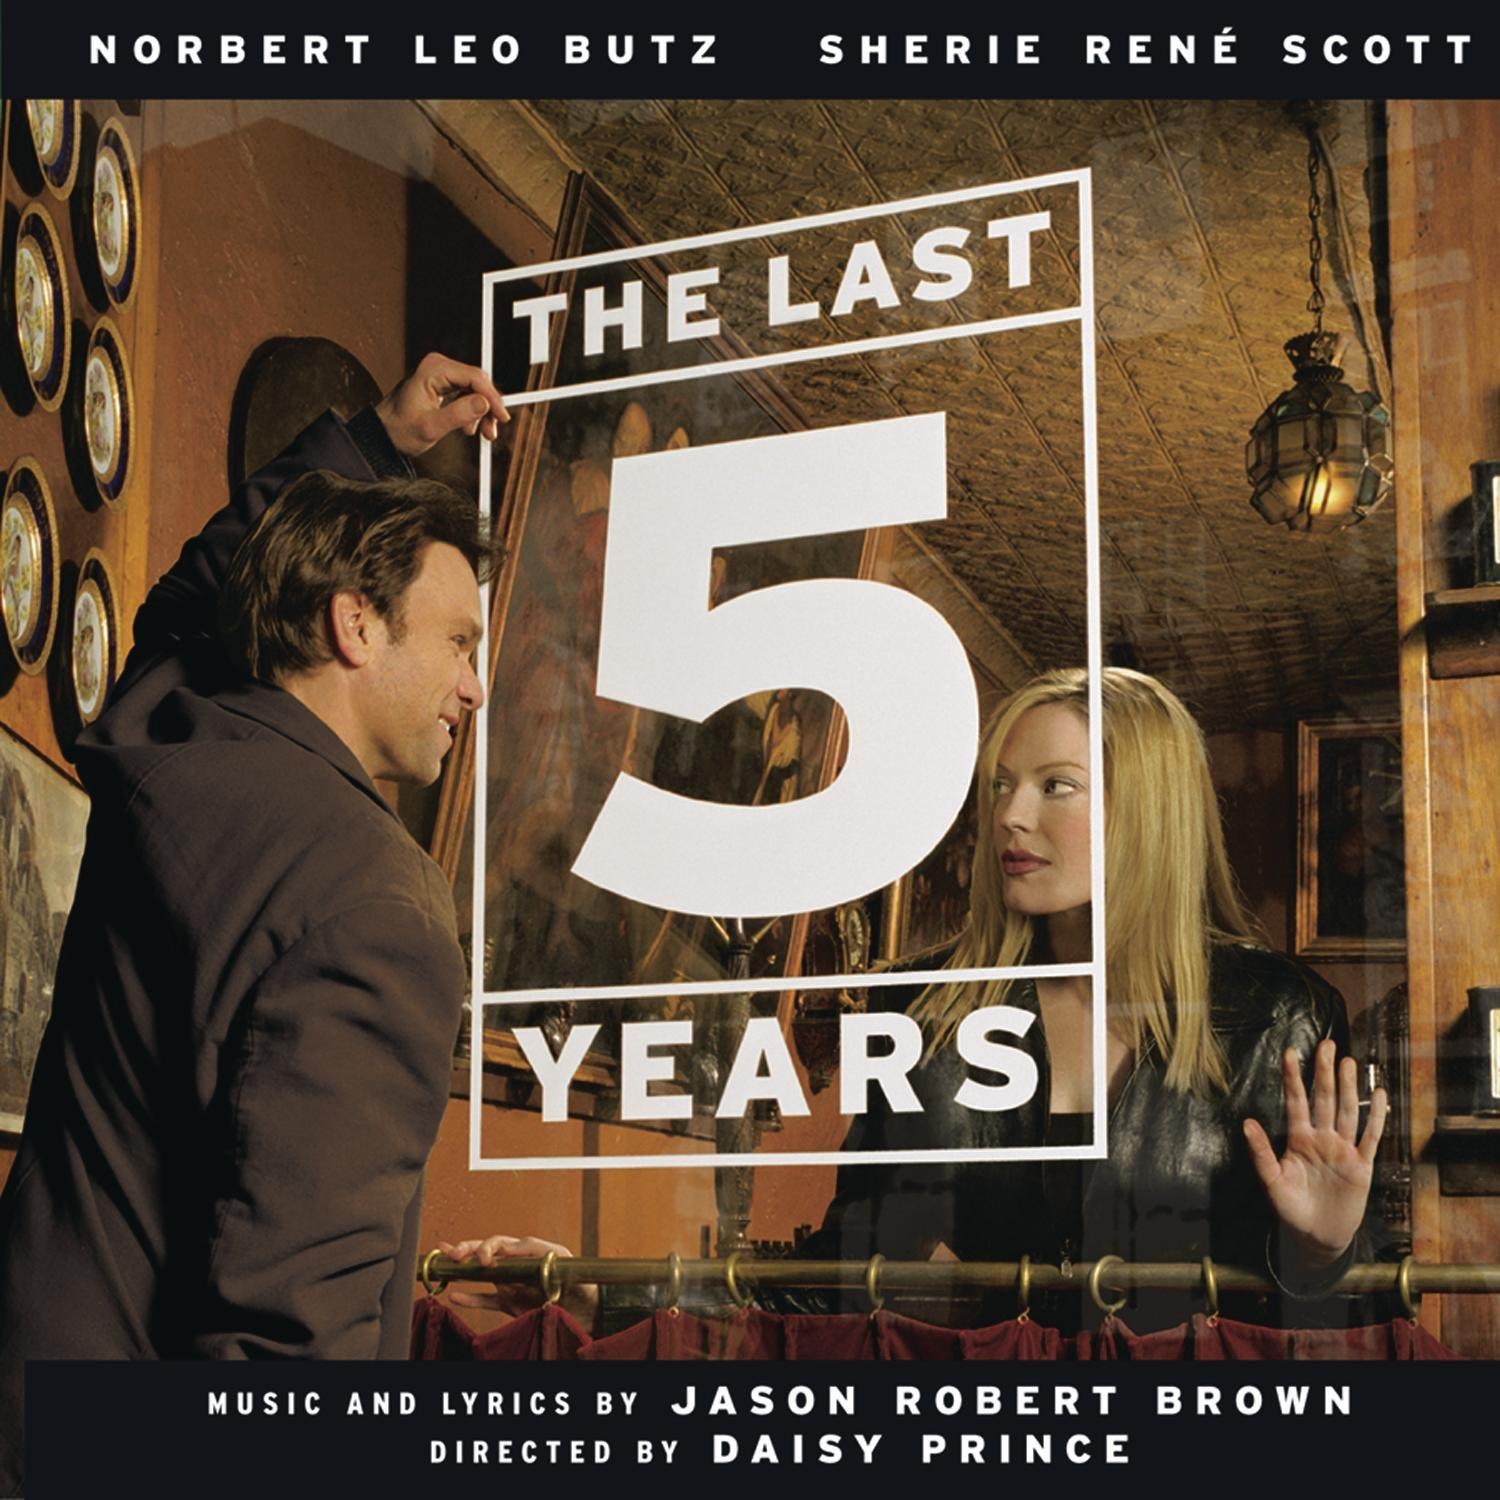 The Last Now free shipping 5 Years Quality inspection 2002 Off-Broadway Cast